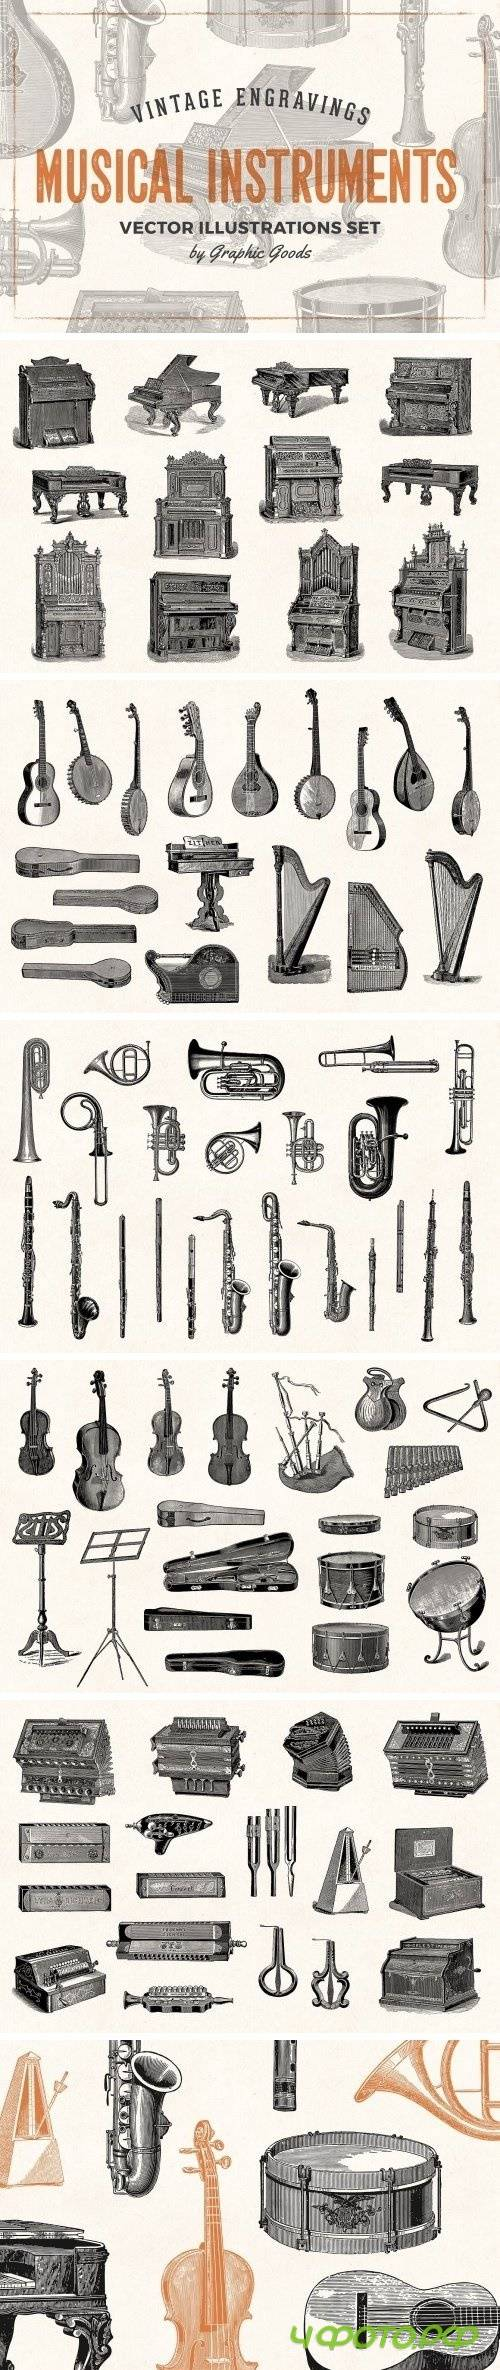 Musical Instruments Engravings Set 1900180